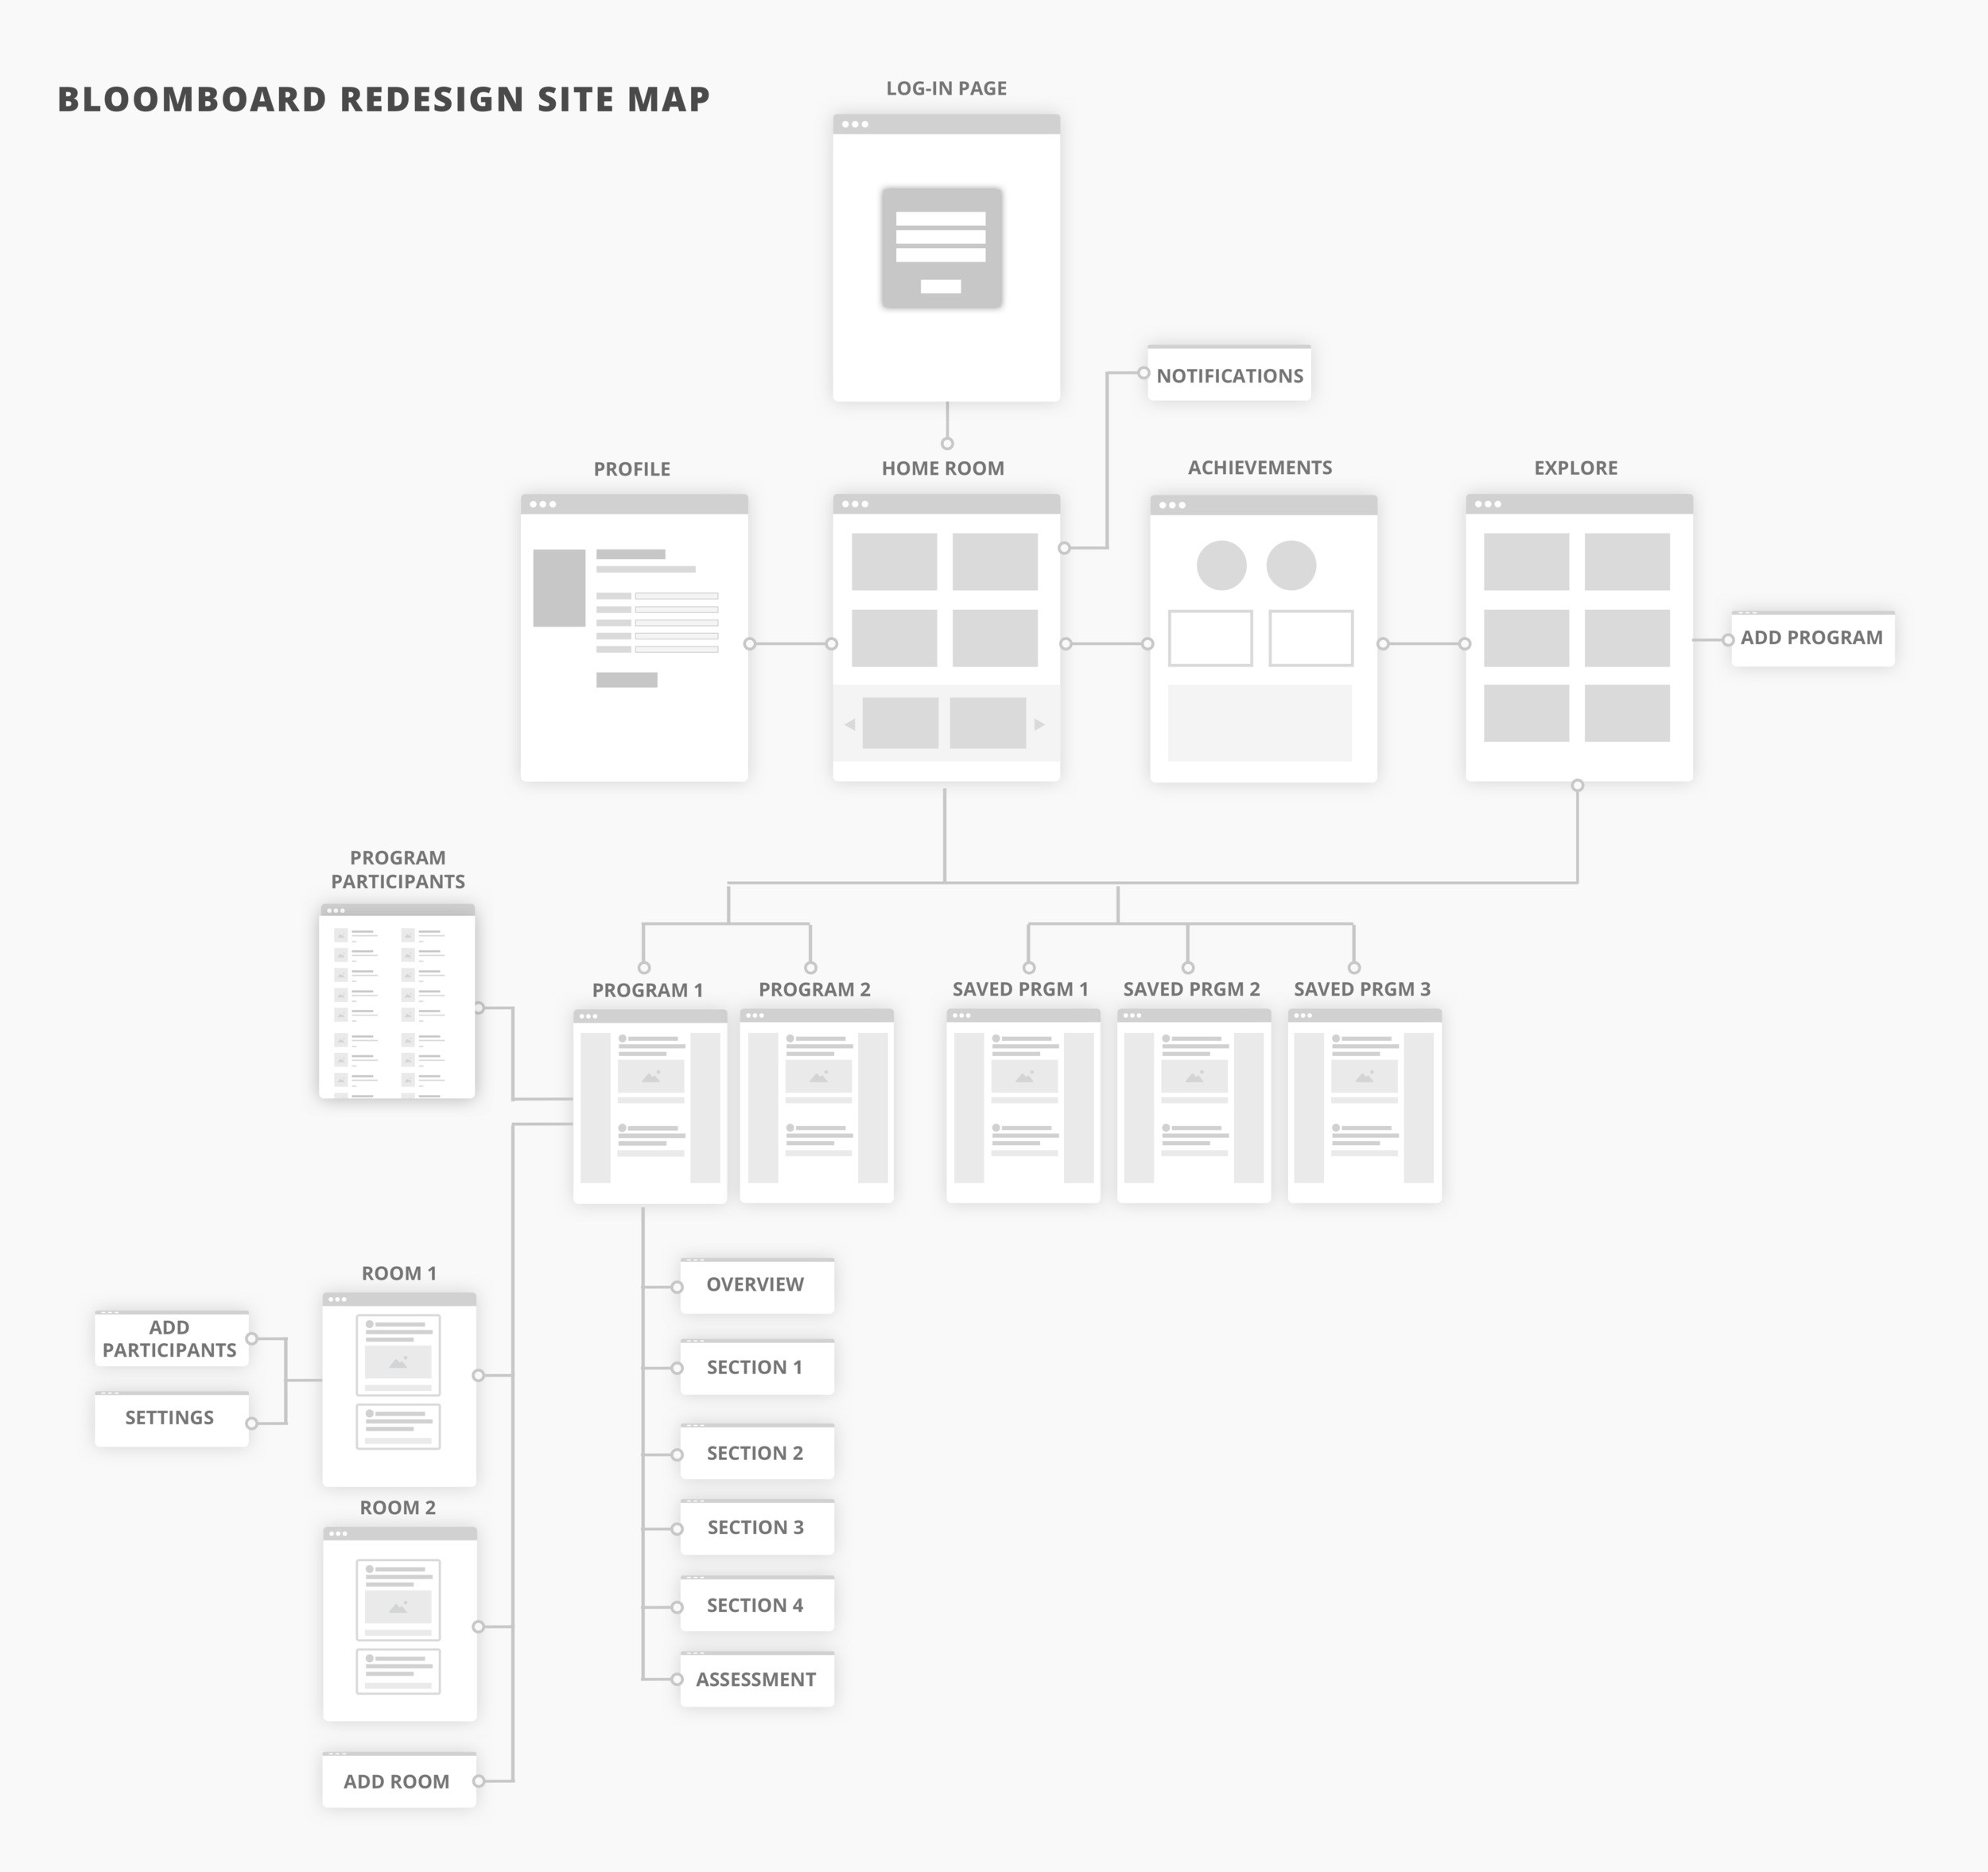 A simpler, cleaner architecture of the product